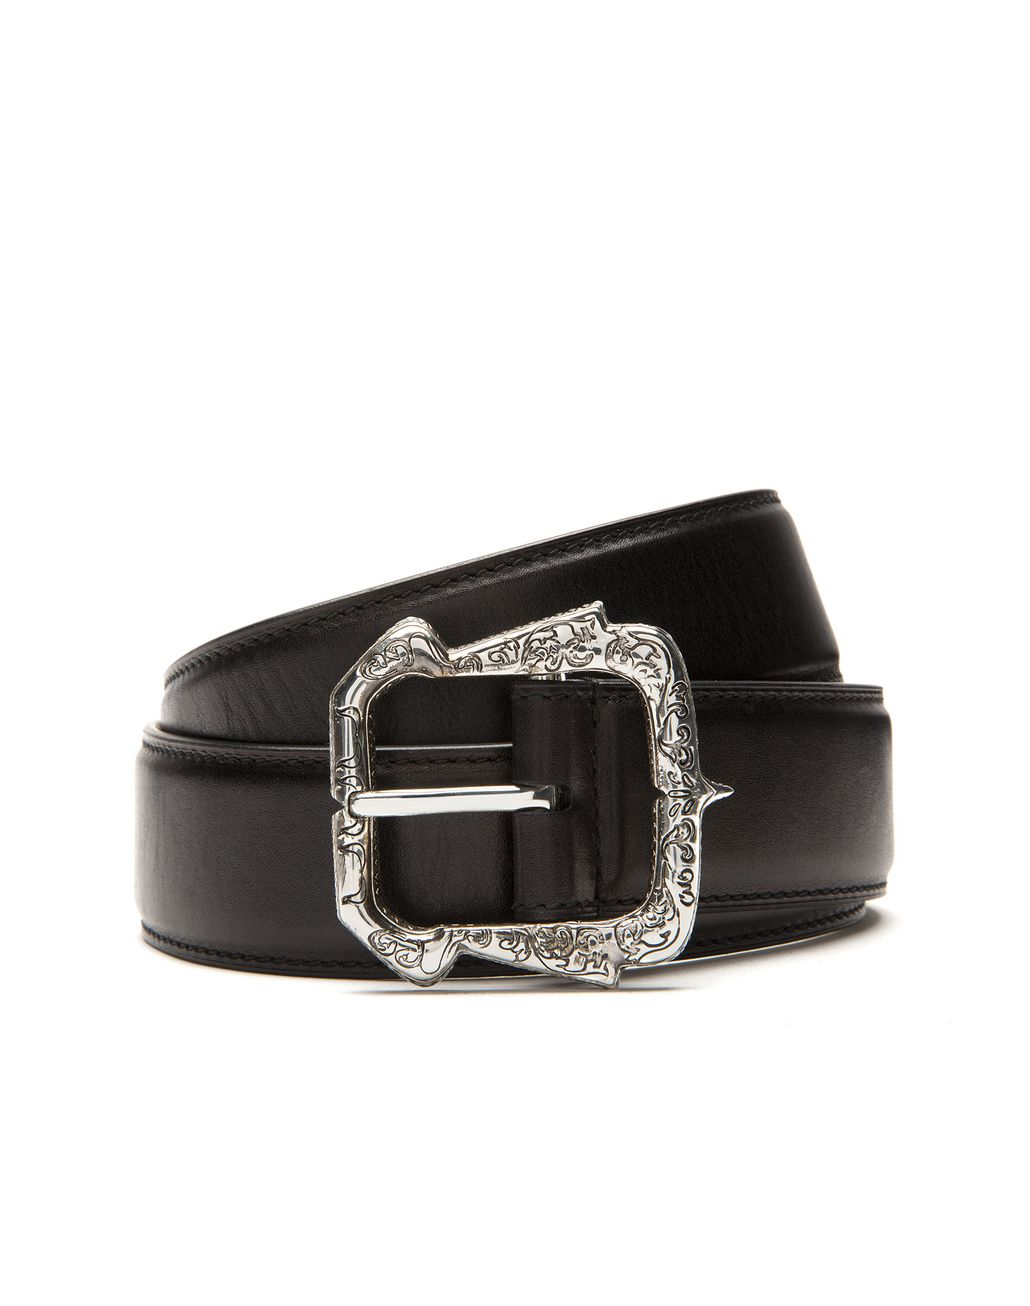 BRIONI Black Belt in Calfskin Leather with Filigree Buckle Belt Man r